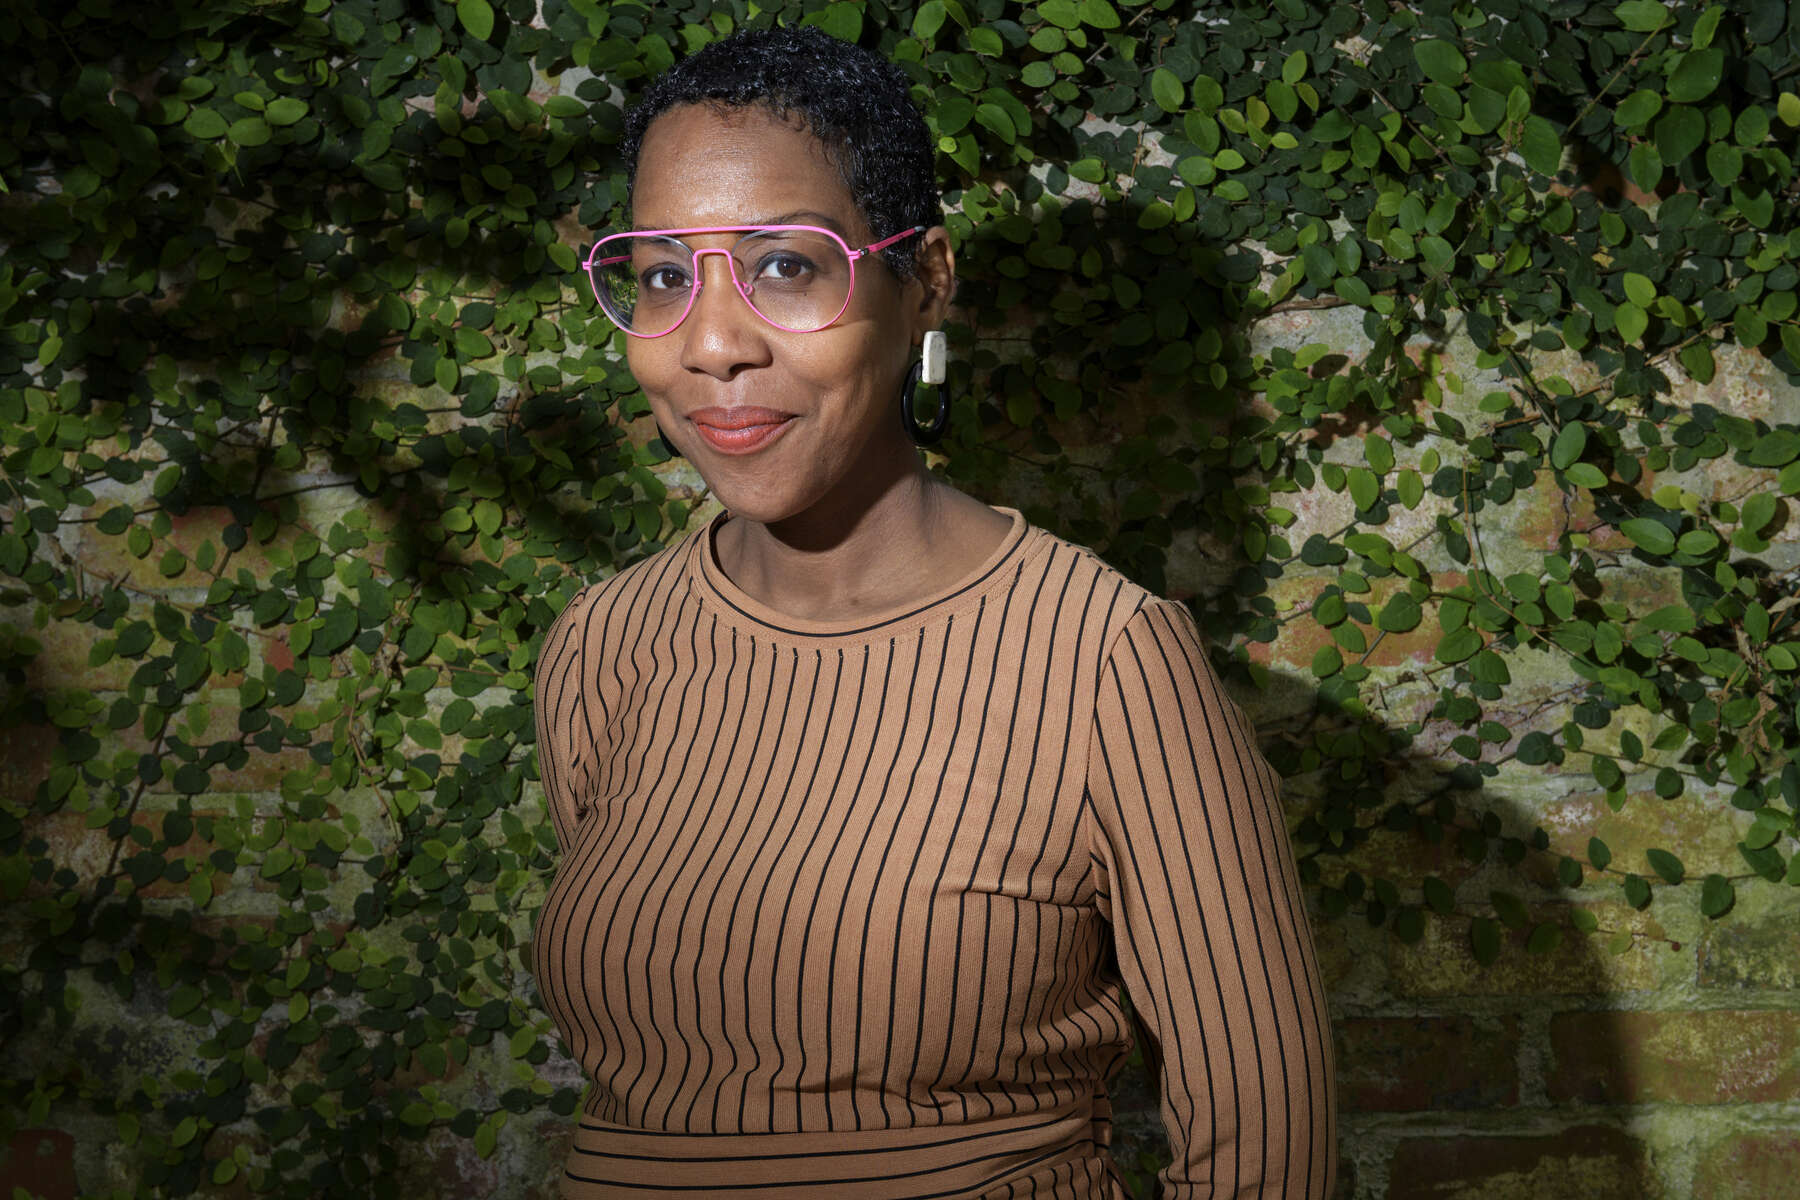 New Orleans African American Museum Executive Director Gia Hamilton stands for a portrait in New Orleans, La. Wednesday, April 3, 2019.